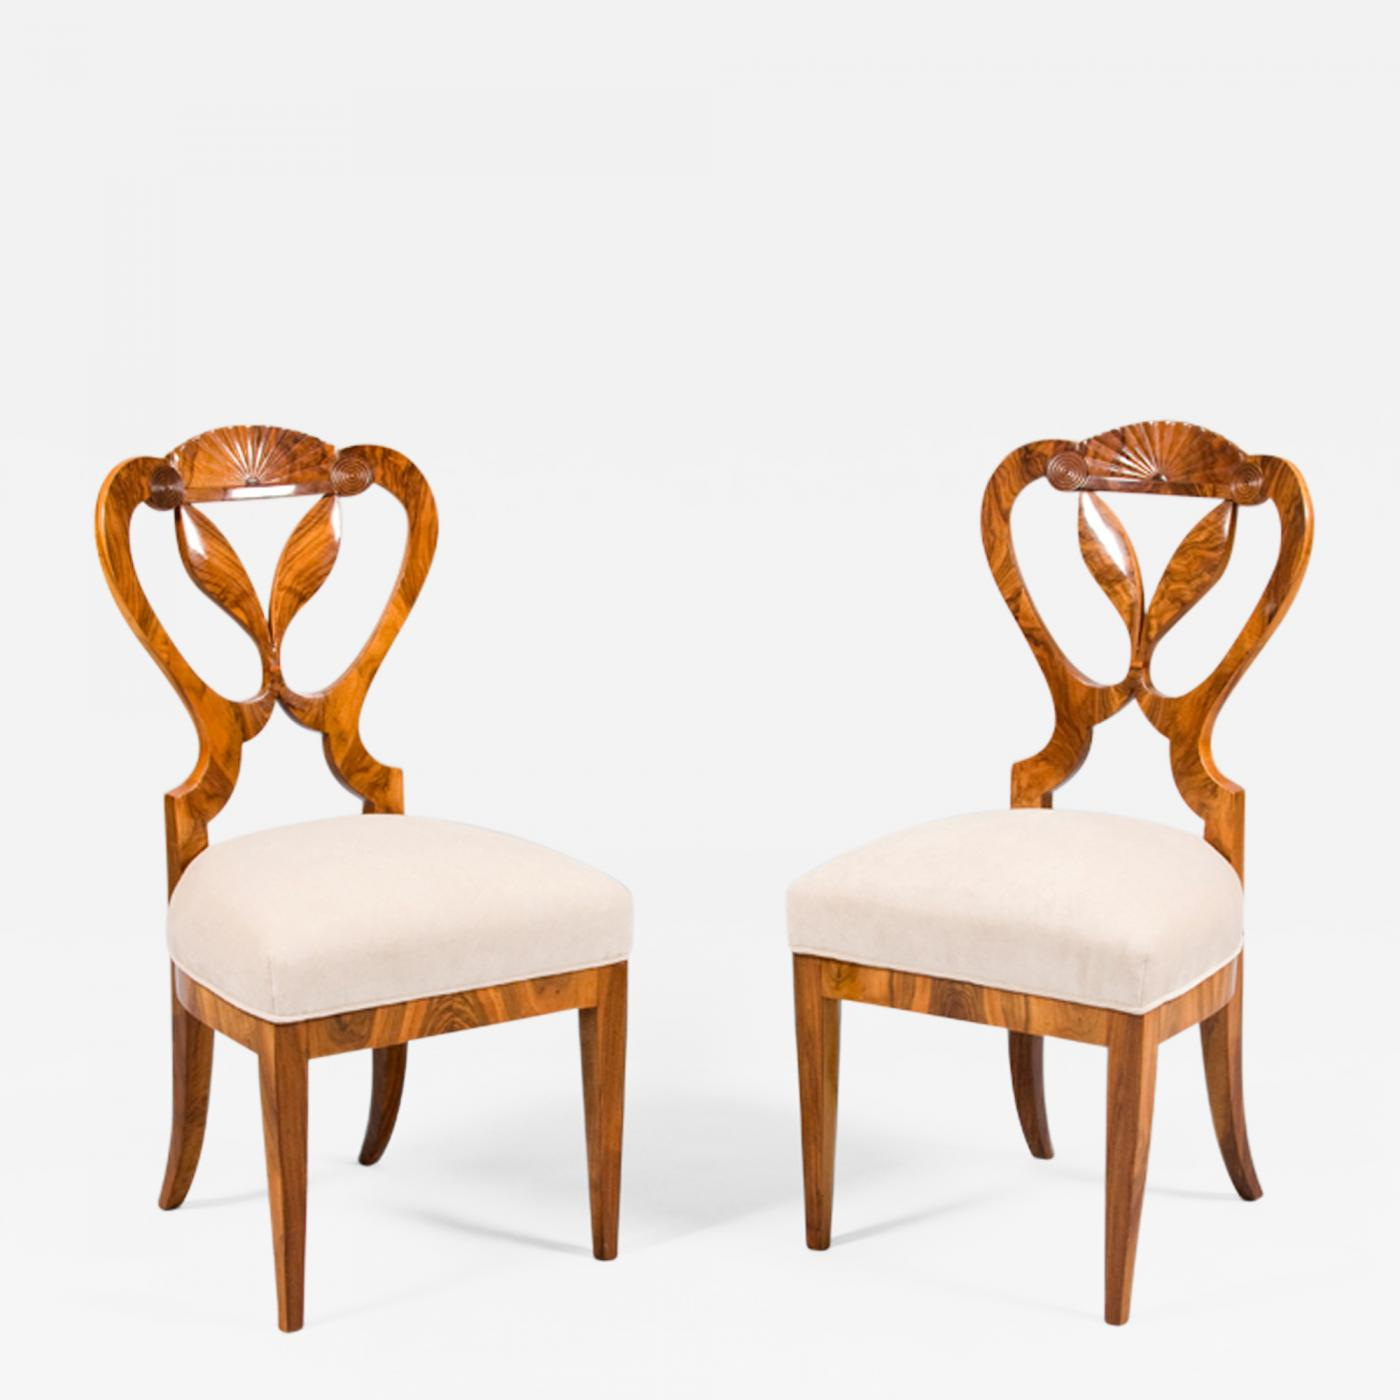 Attirant Listings / Furniture / Seating / Dining Chairs